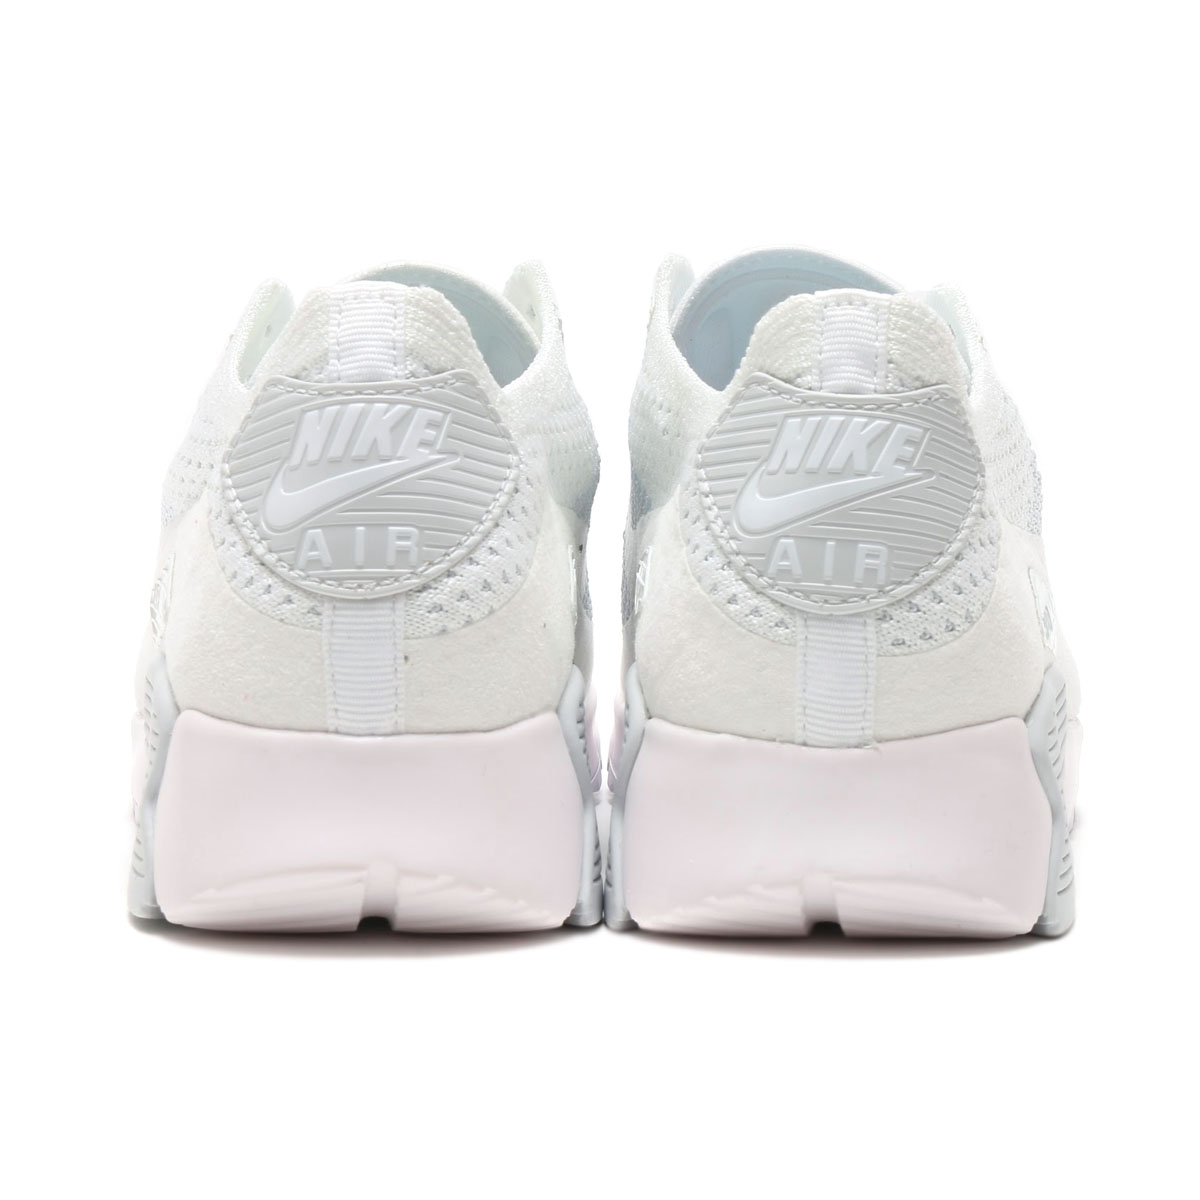 size 40 ebf6a f13a5 NIKE WMNS AIR MAX 90 ULTRA 2.0 FLYKNIT (Nike women Air Max 90 ultra 2.0 fly  knit) WHITE WHITE-PURE PLATINUM  lady s sneakers  17SU-I